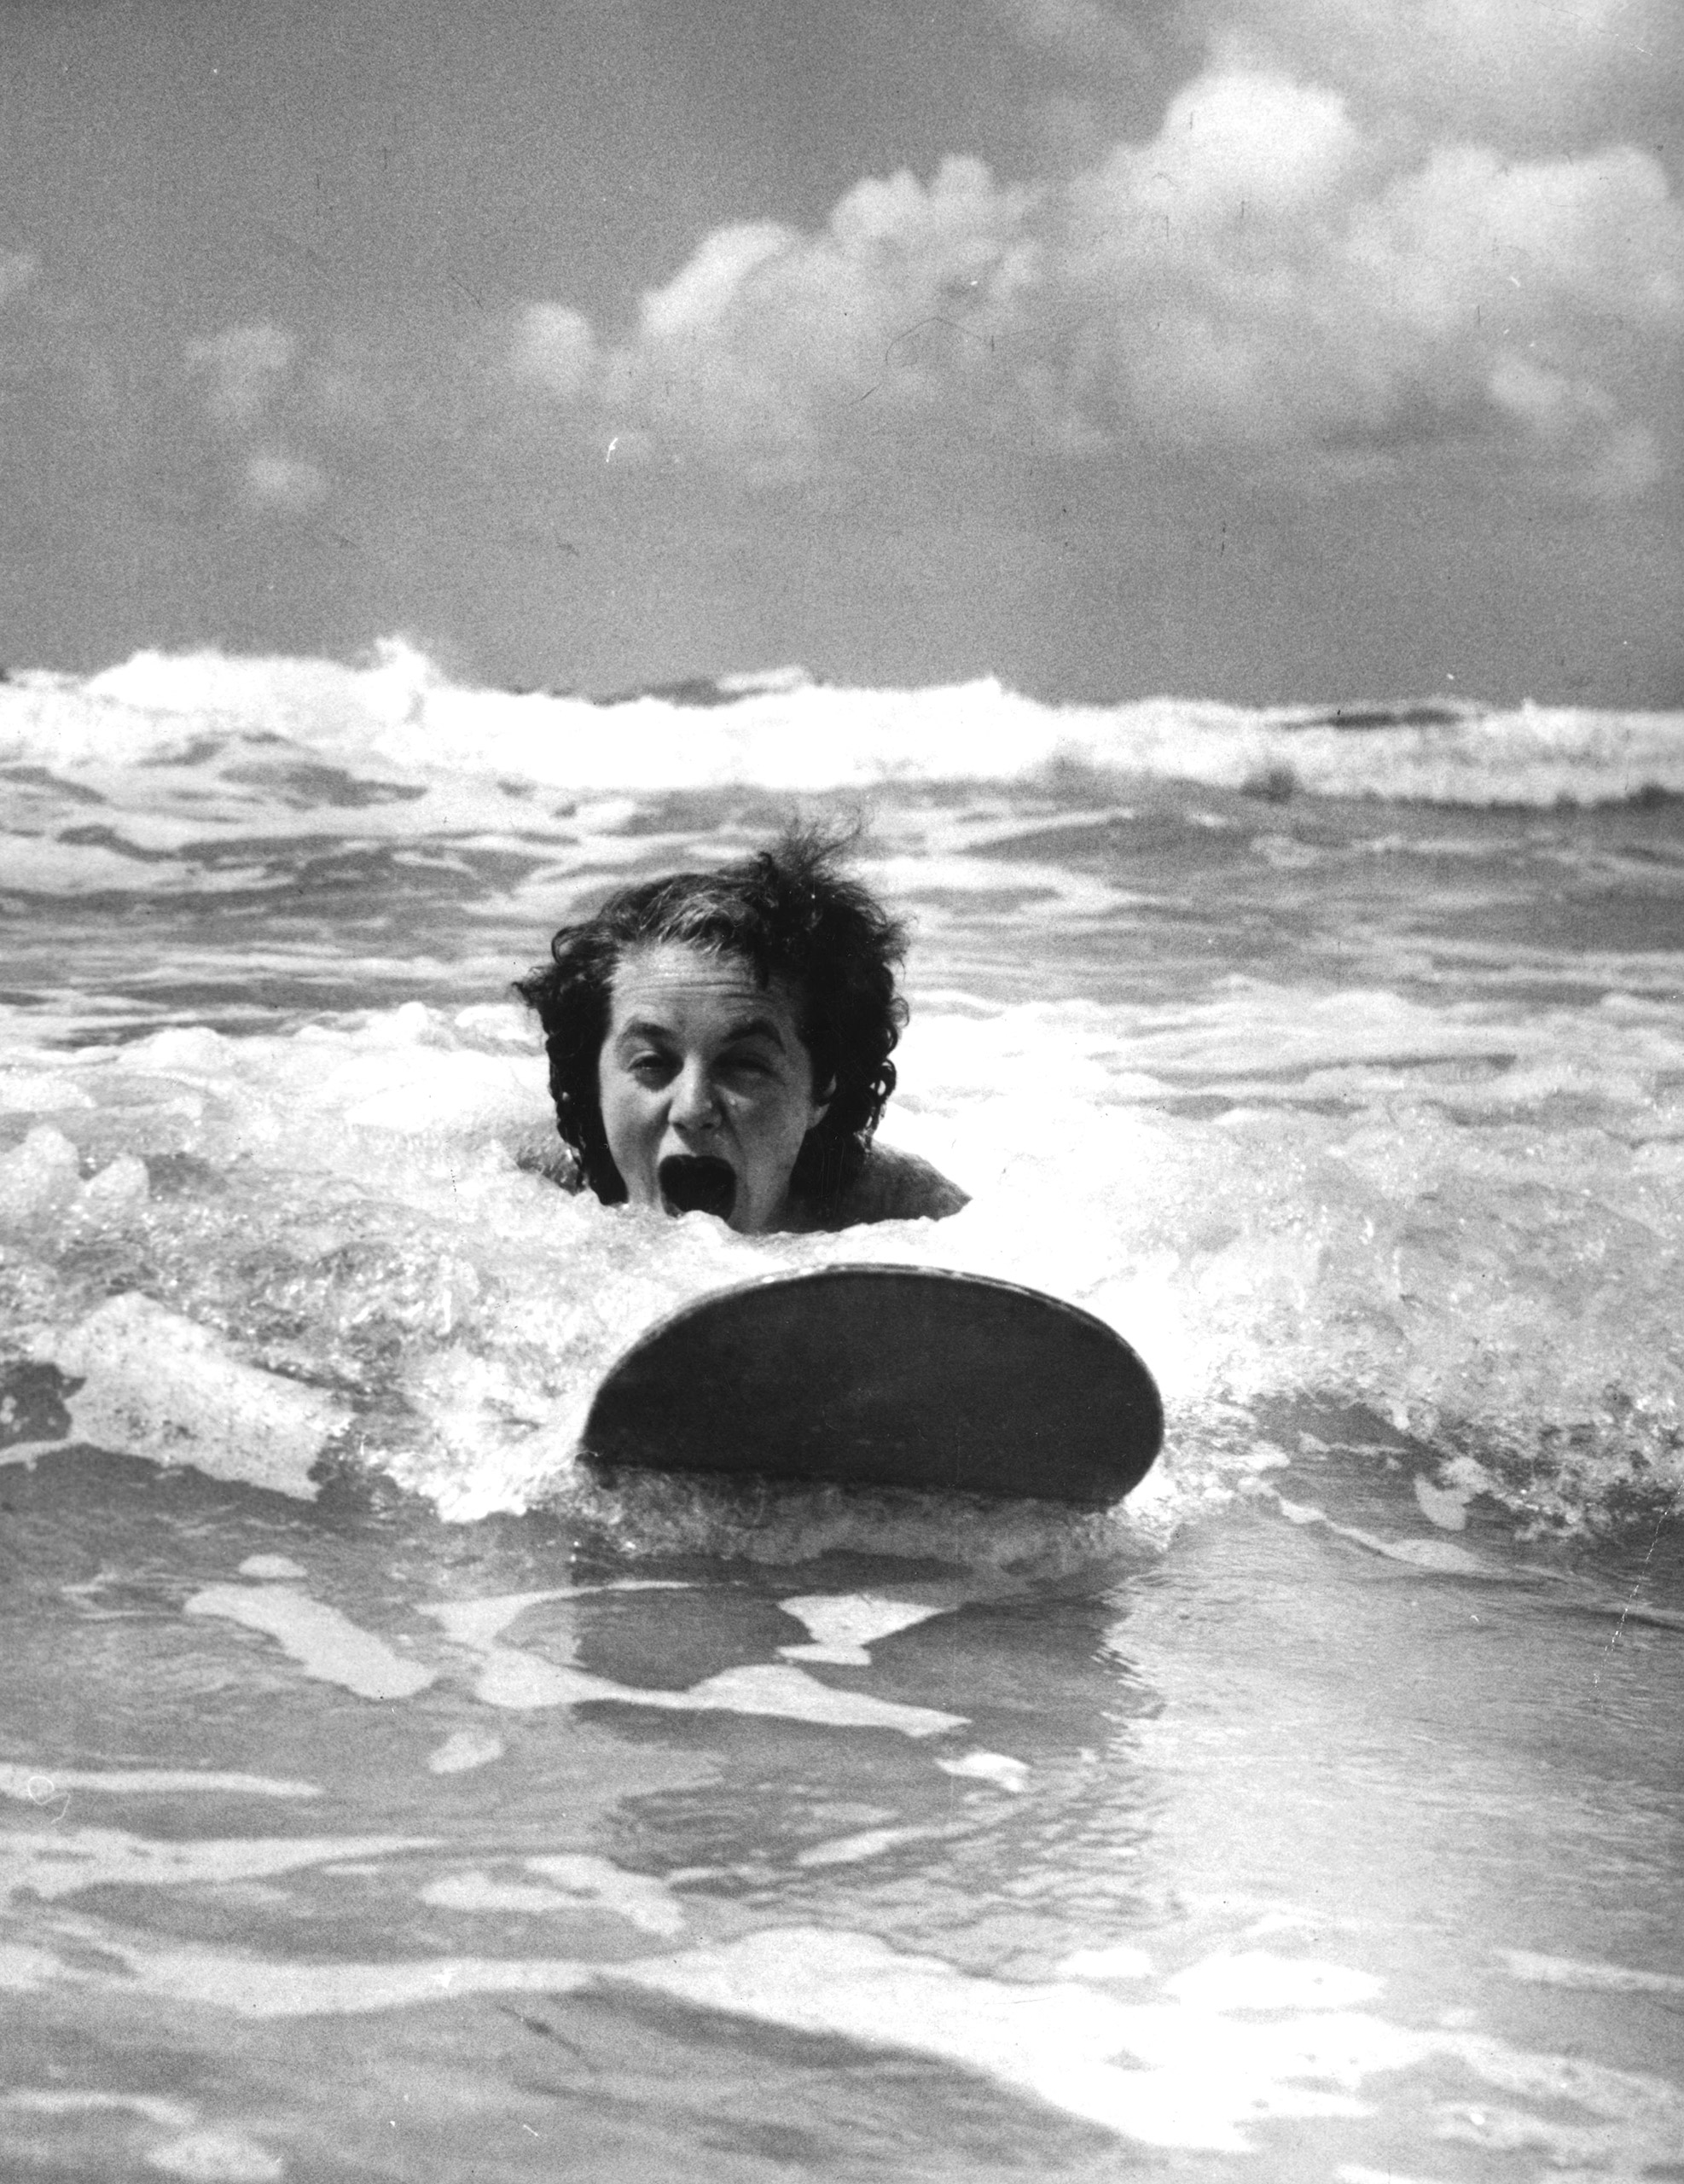 Expert surfer Betty Hunt riding the waves at Newquay, Cornwall, 1952.